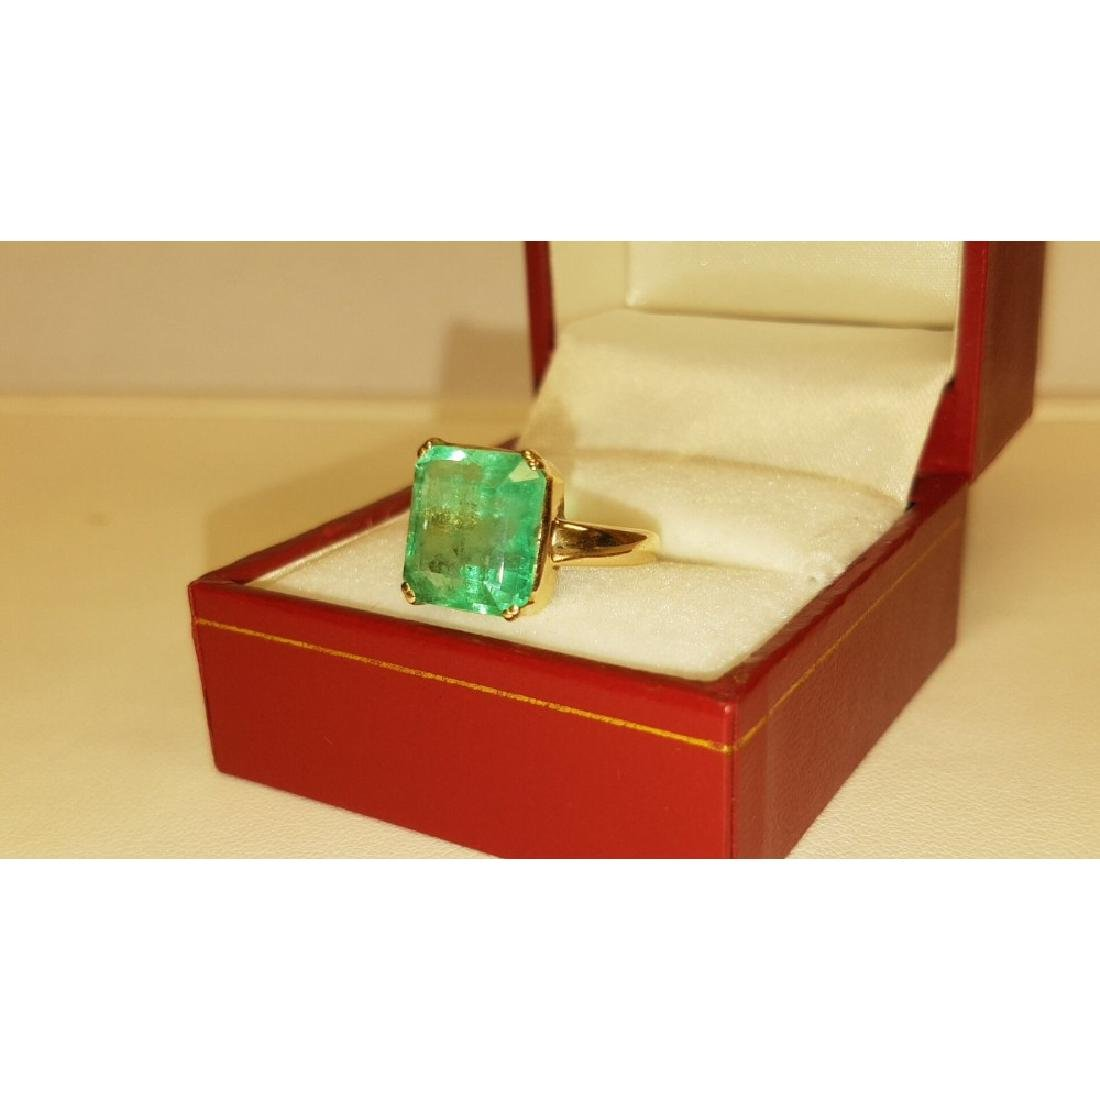 14K Yellow Gold, 6.00 Carat Solitaire Emerald Ring - 2